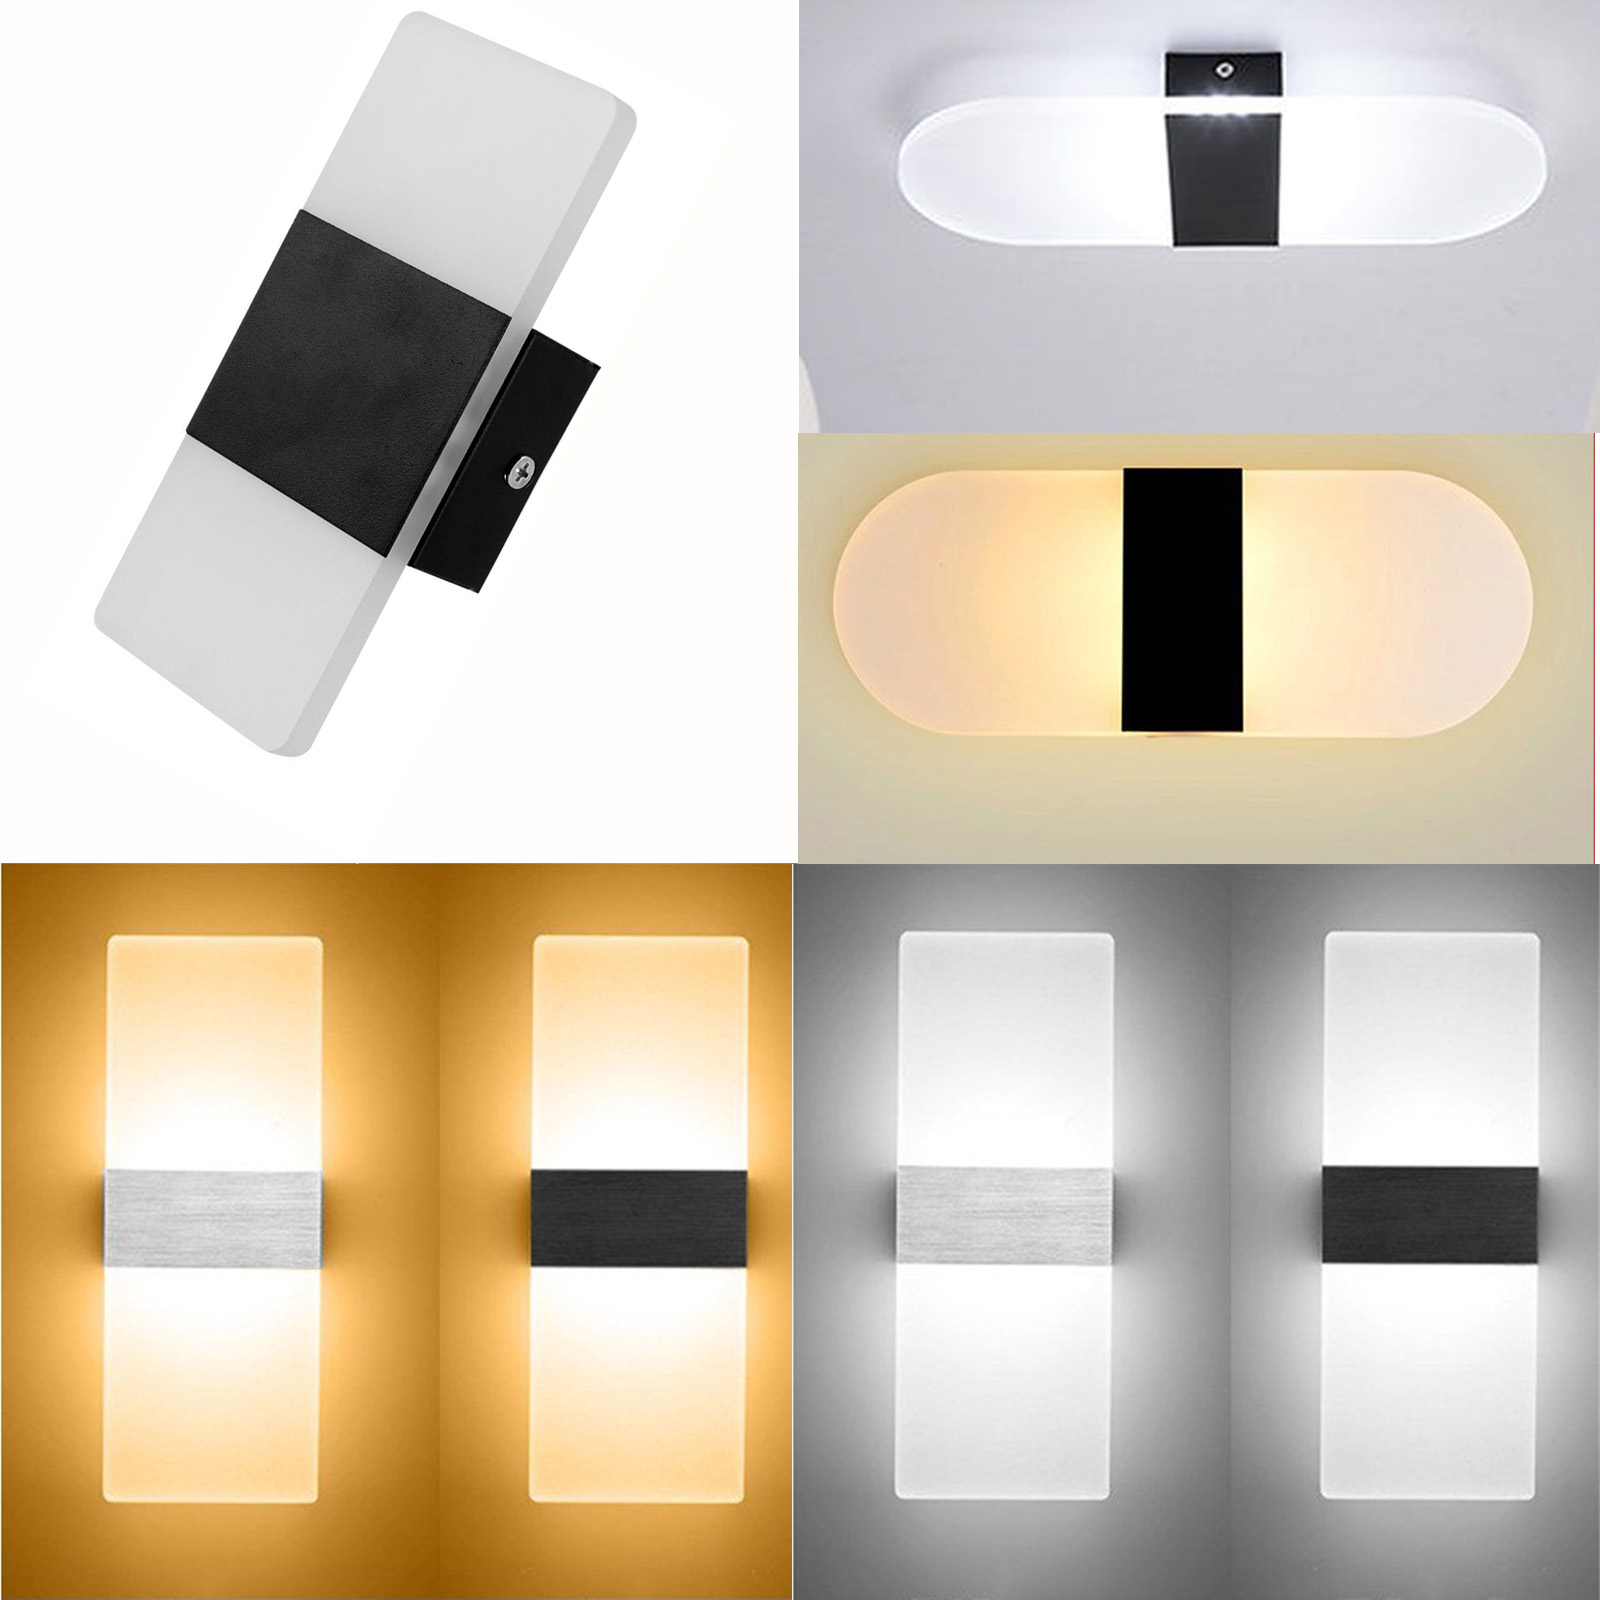 Details about modern led wall lights cube sconce fixtures lighting indoor outdoor decor ss953